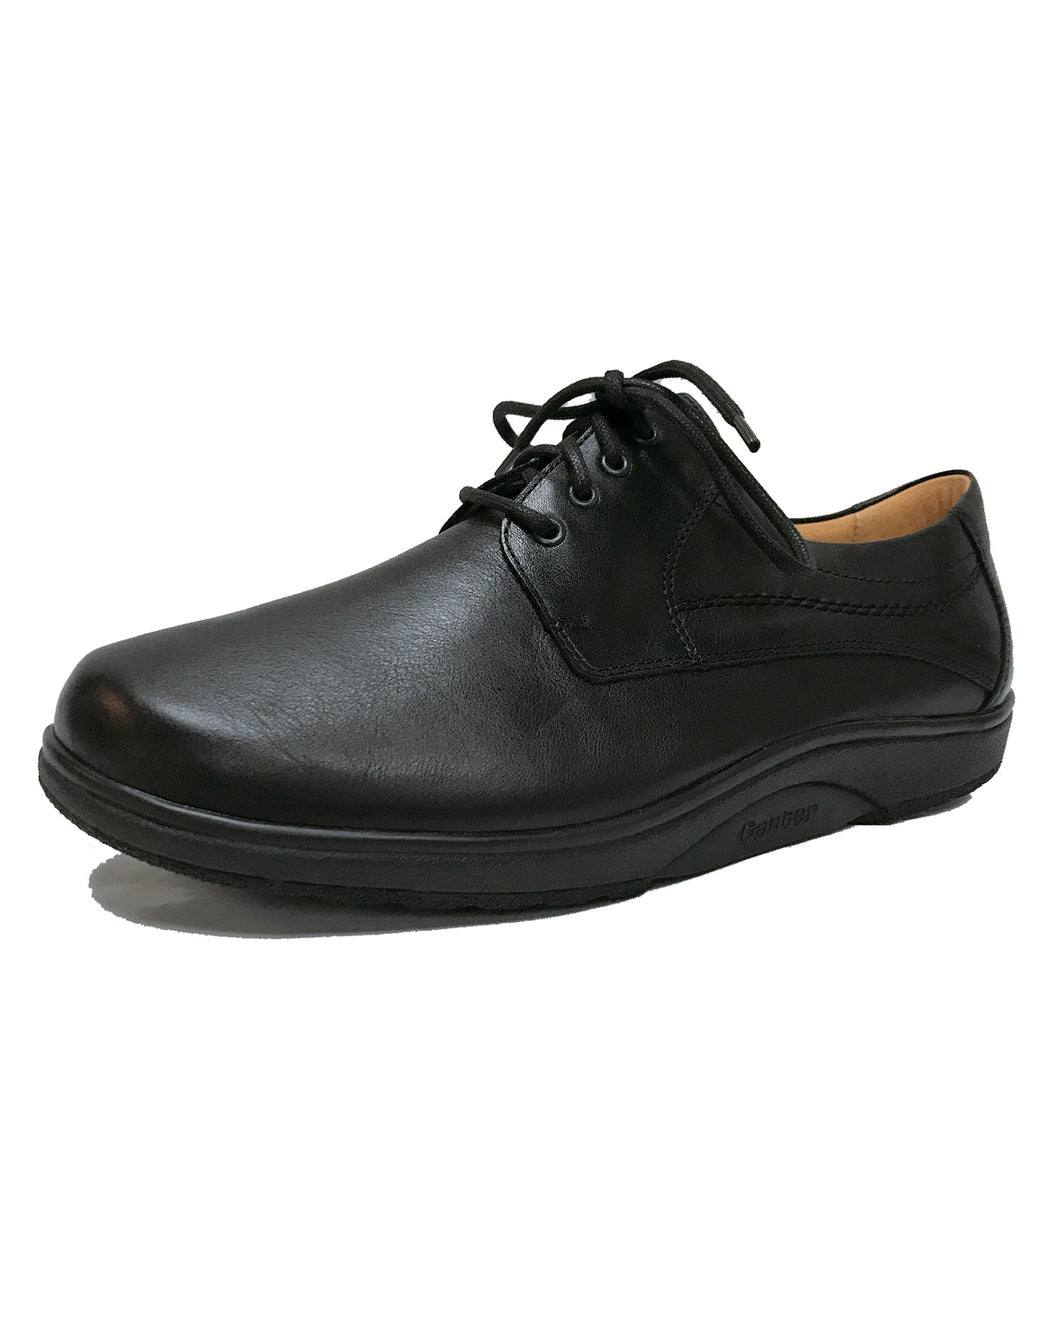 GANTER 259721 KAI LACE SHOE 7-11H  - SCHWARZ